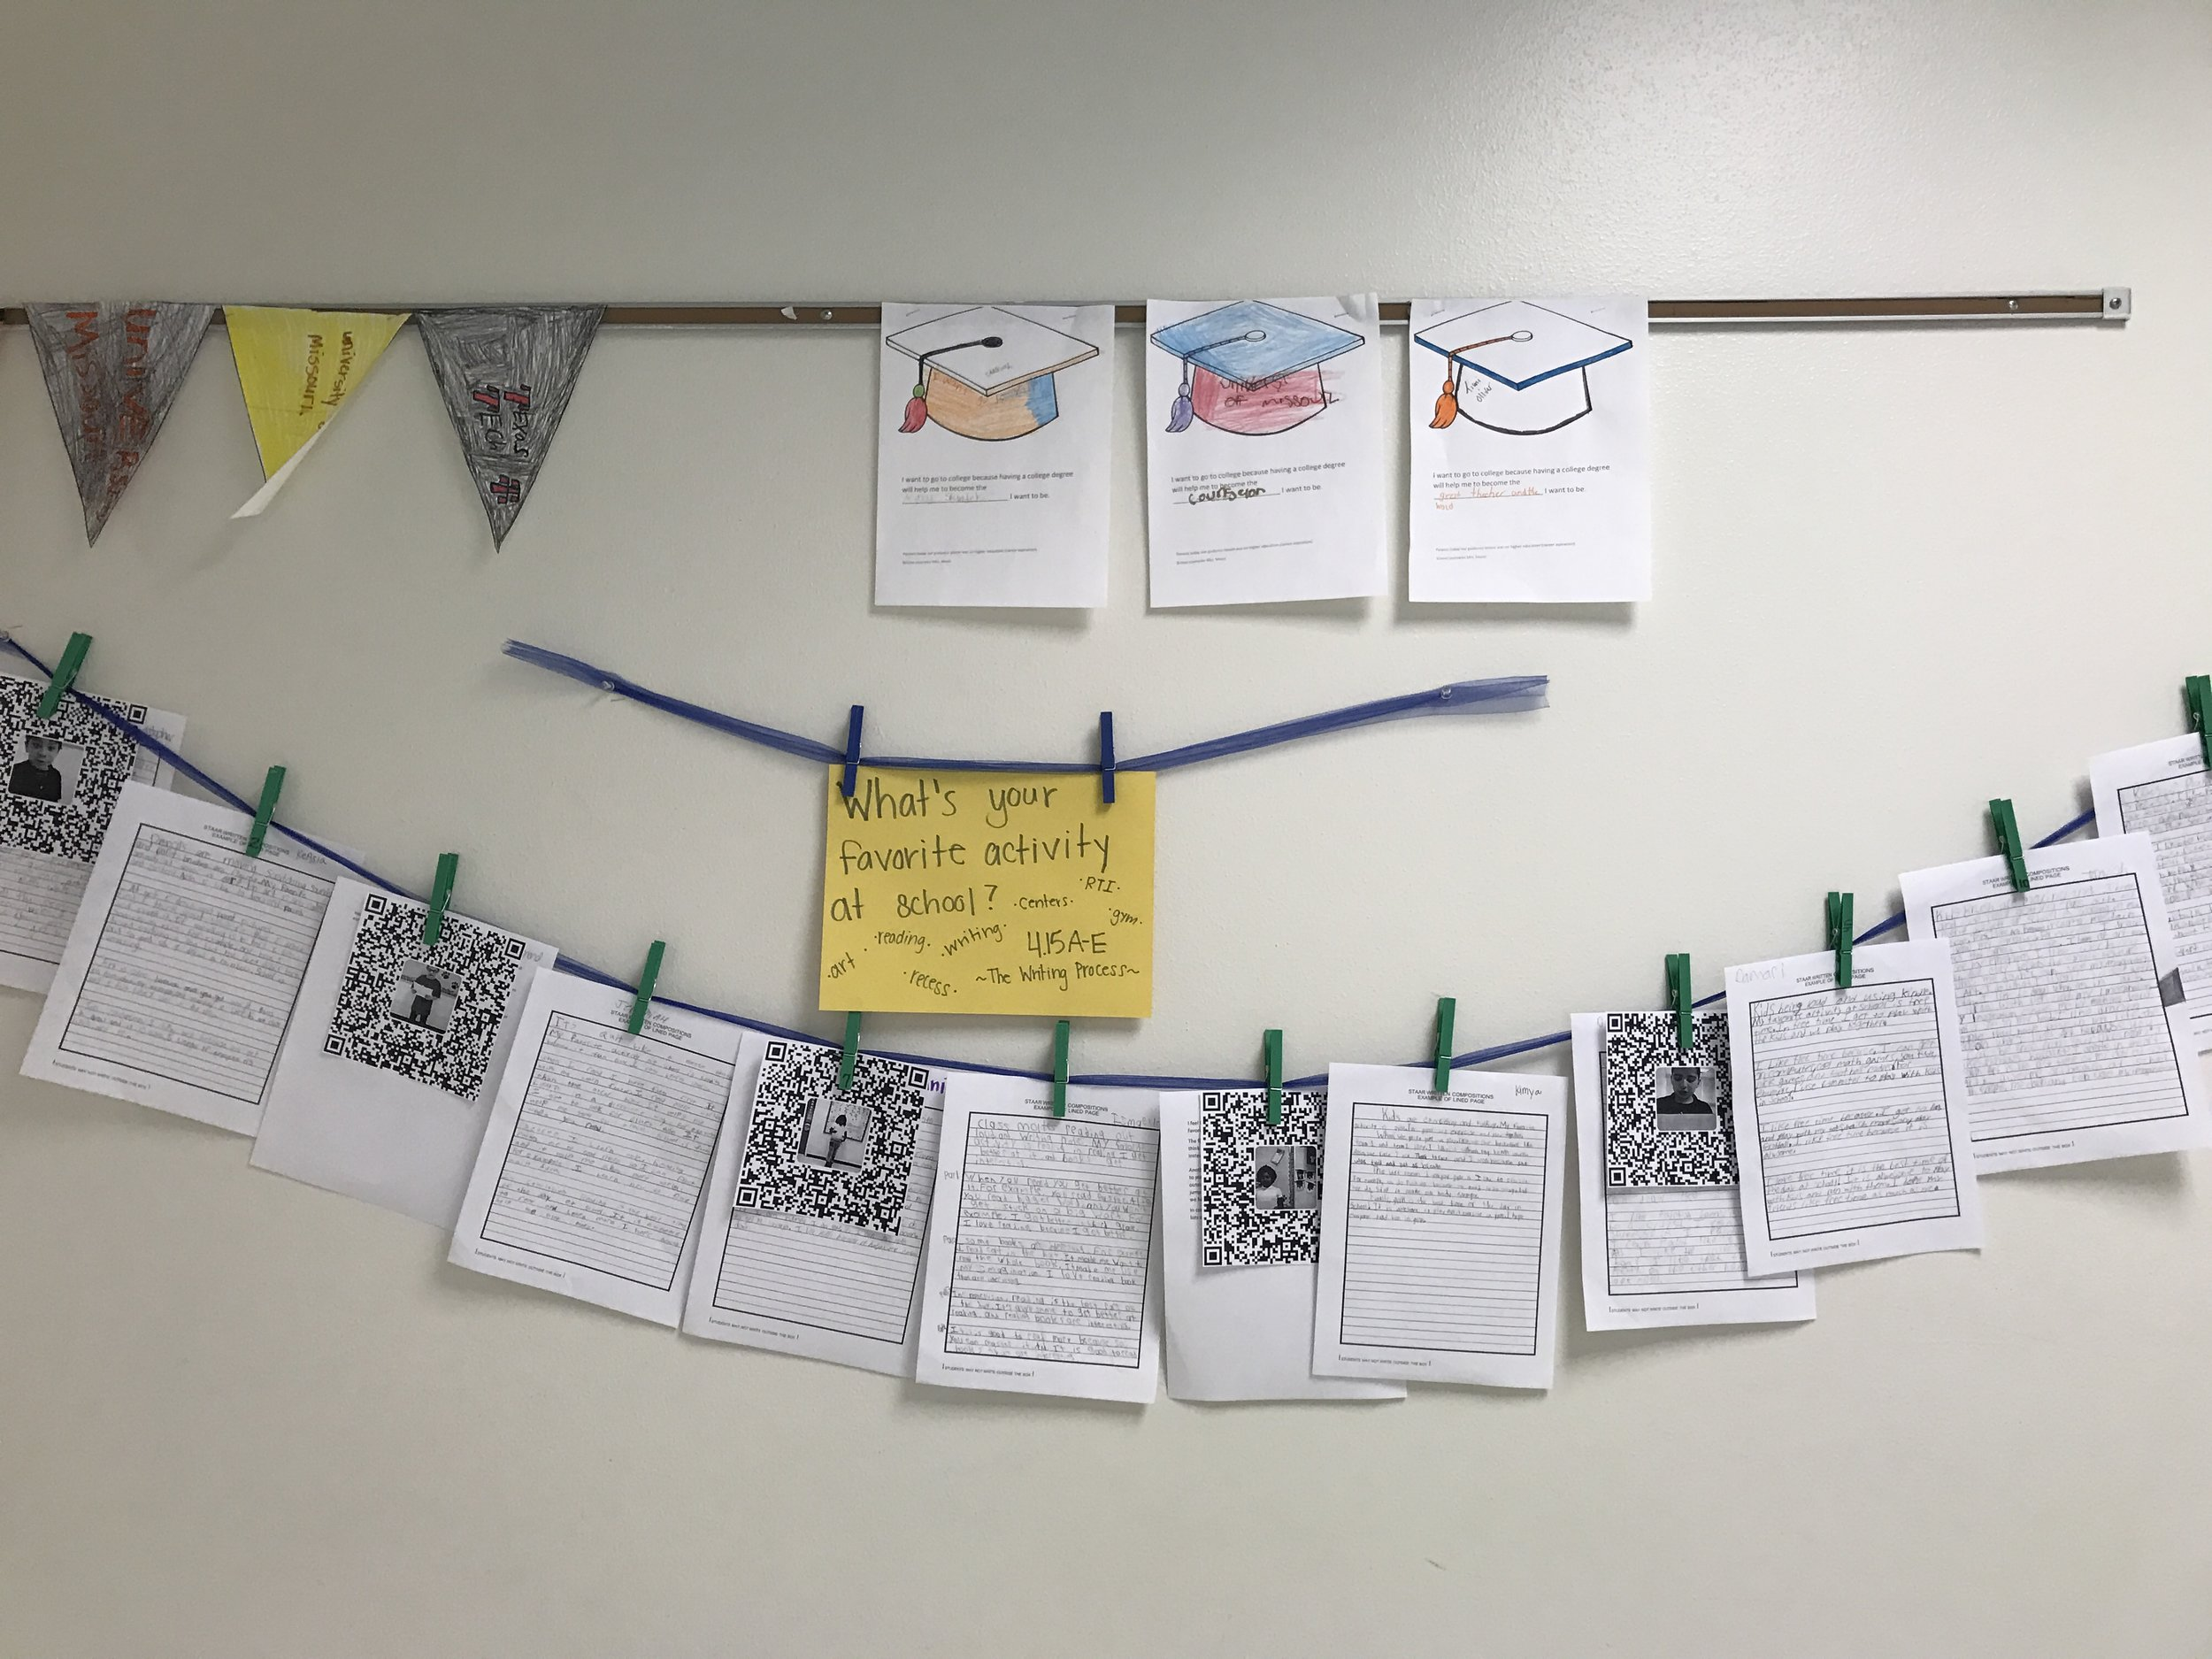 This teacher used their bulletin board to show off student work with QR codes that link you to an audio clip of the student reading their story.